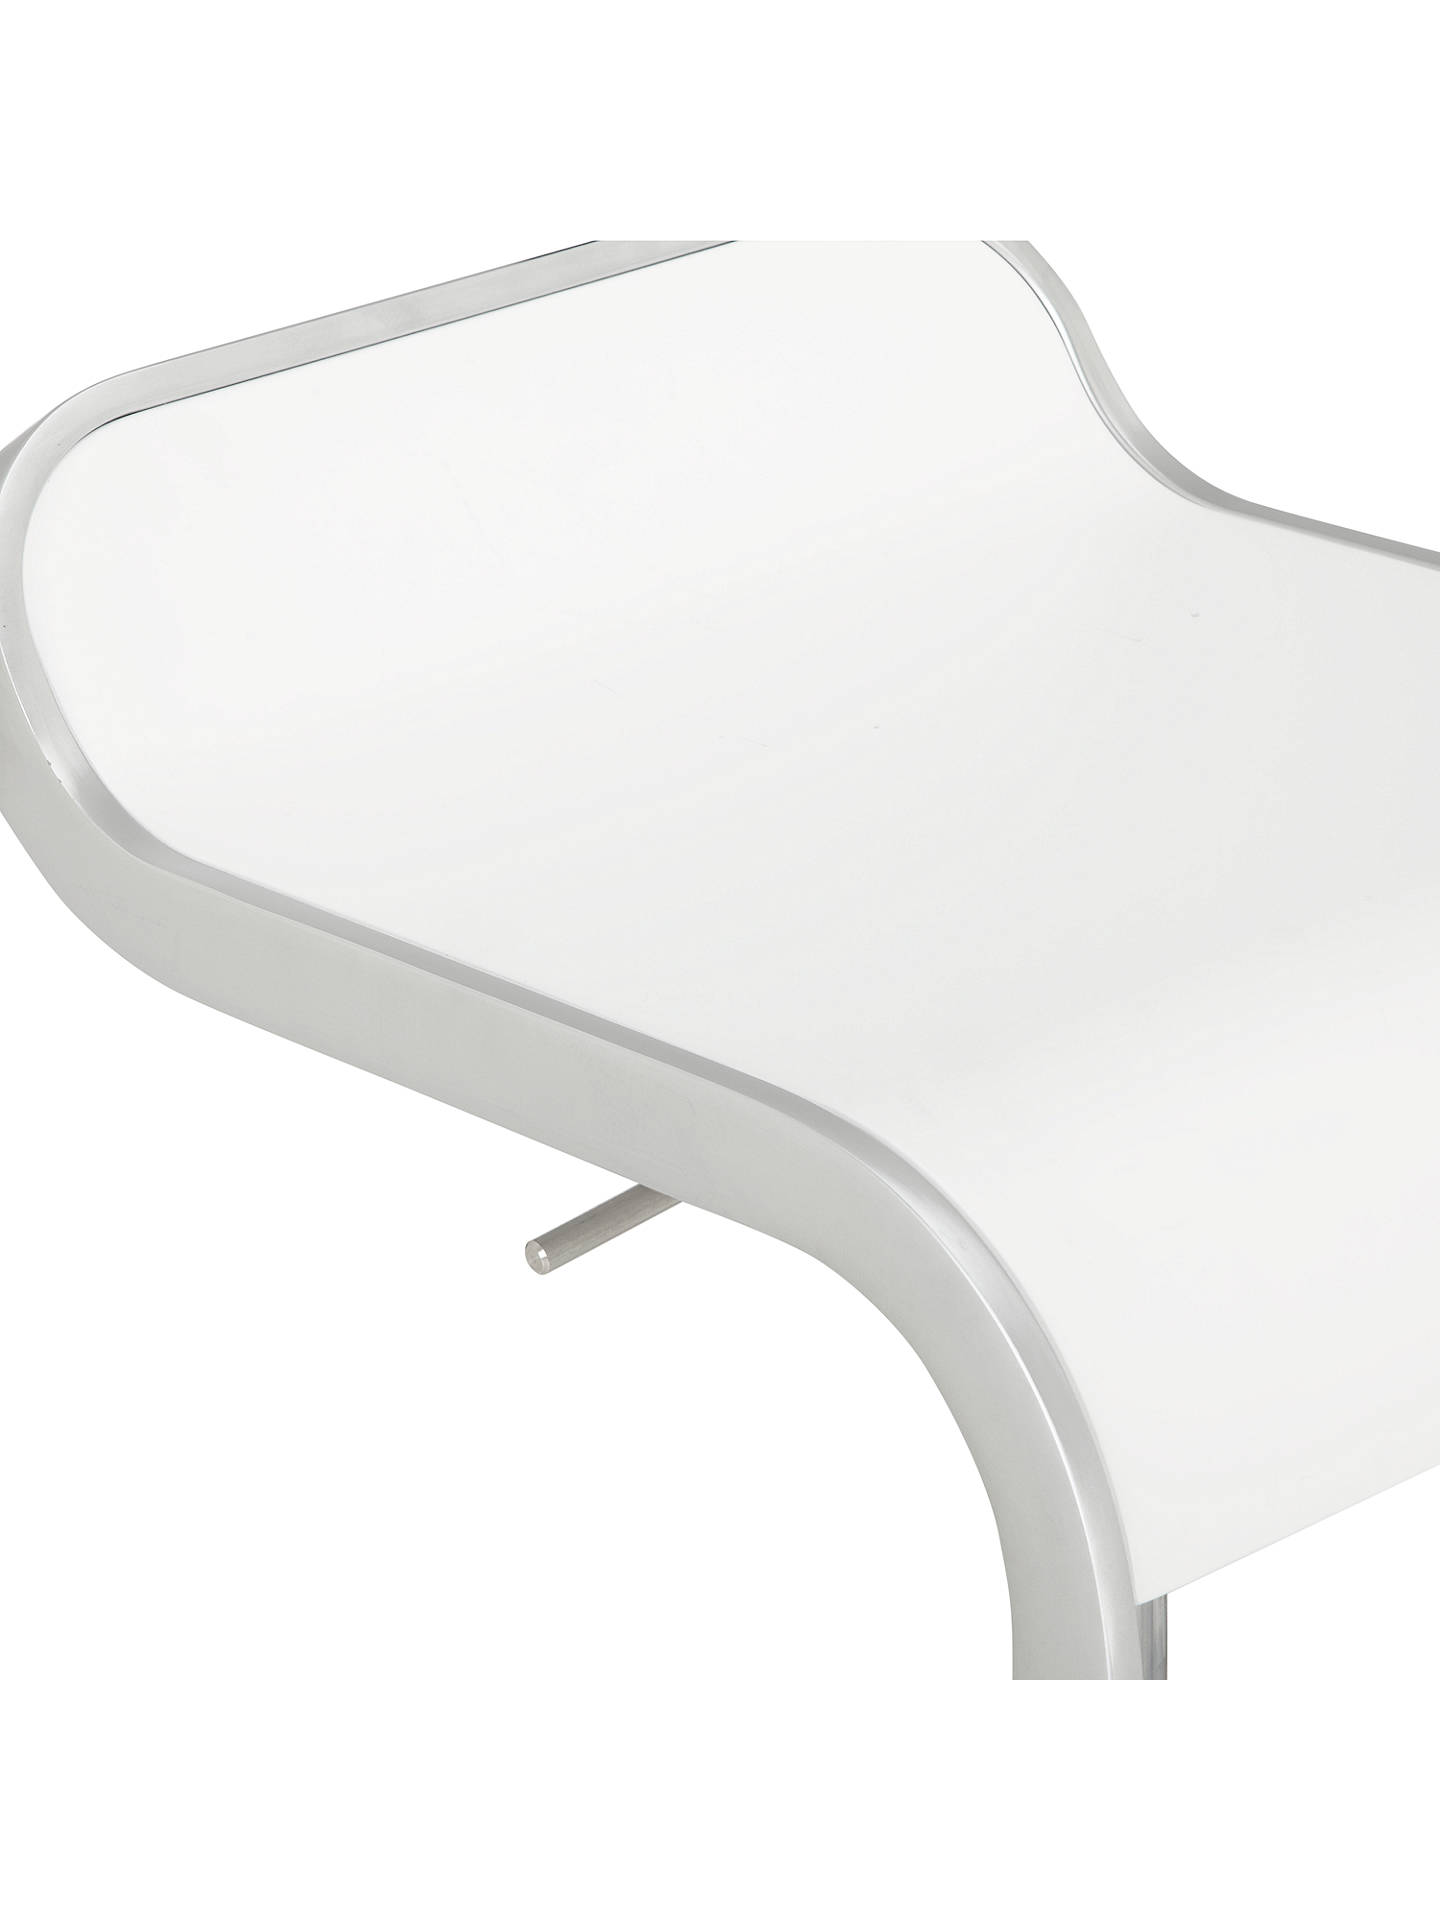 La Palma Lem Bar Stool White At John Lewis Amp Partners